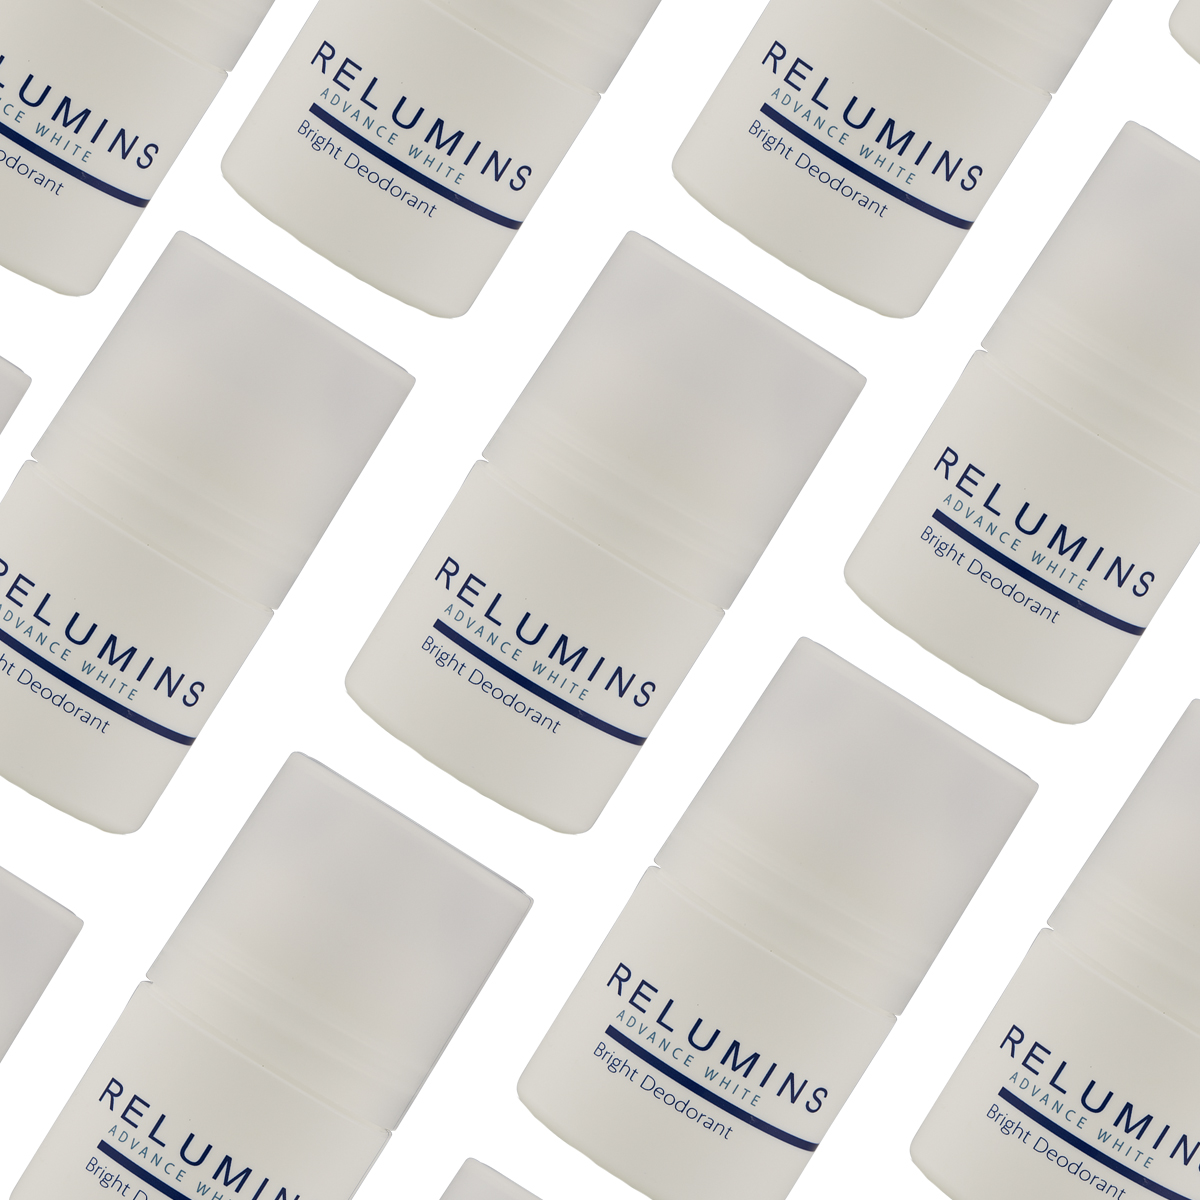 Buy Bulk & SAVE!  12 Relumins Advance White - Deodorant Roll-On Save 50%!!!